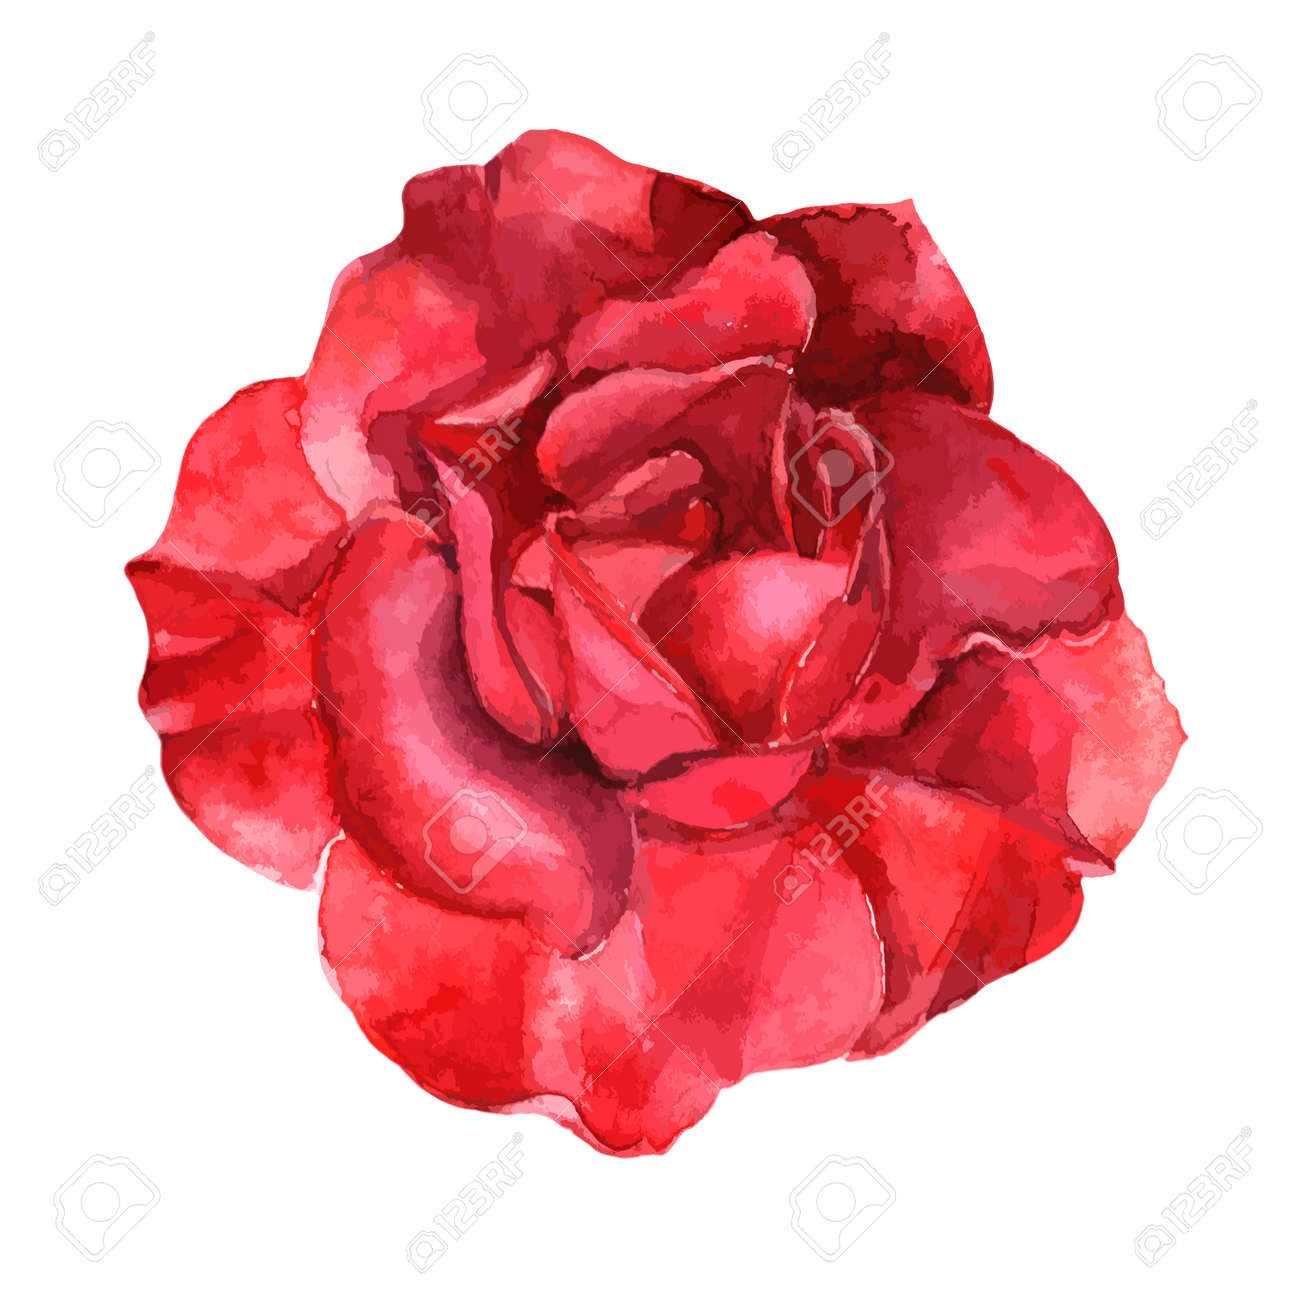 Watercolor Rose Stock Photos. Royalty Free Watercolor Rose Images